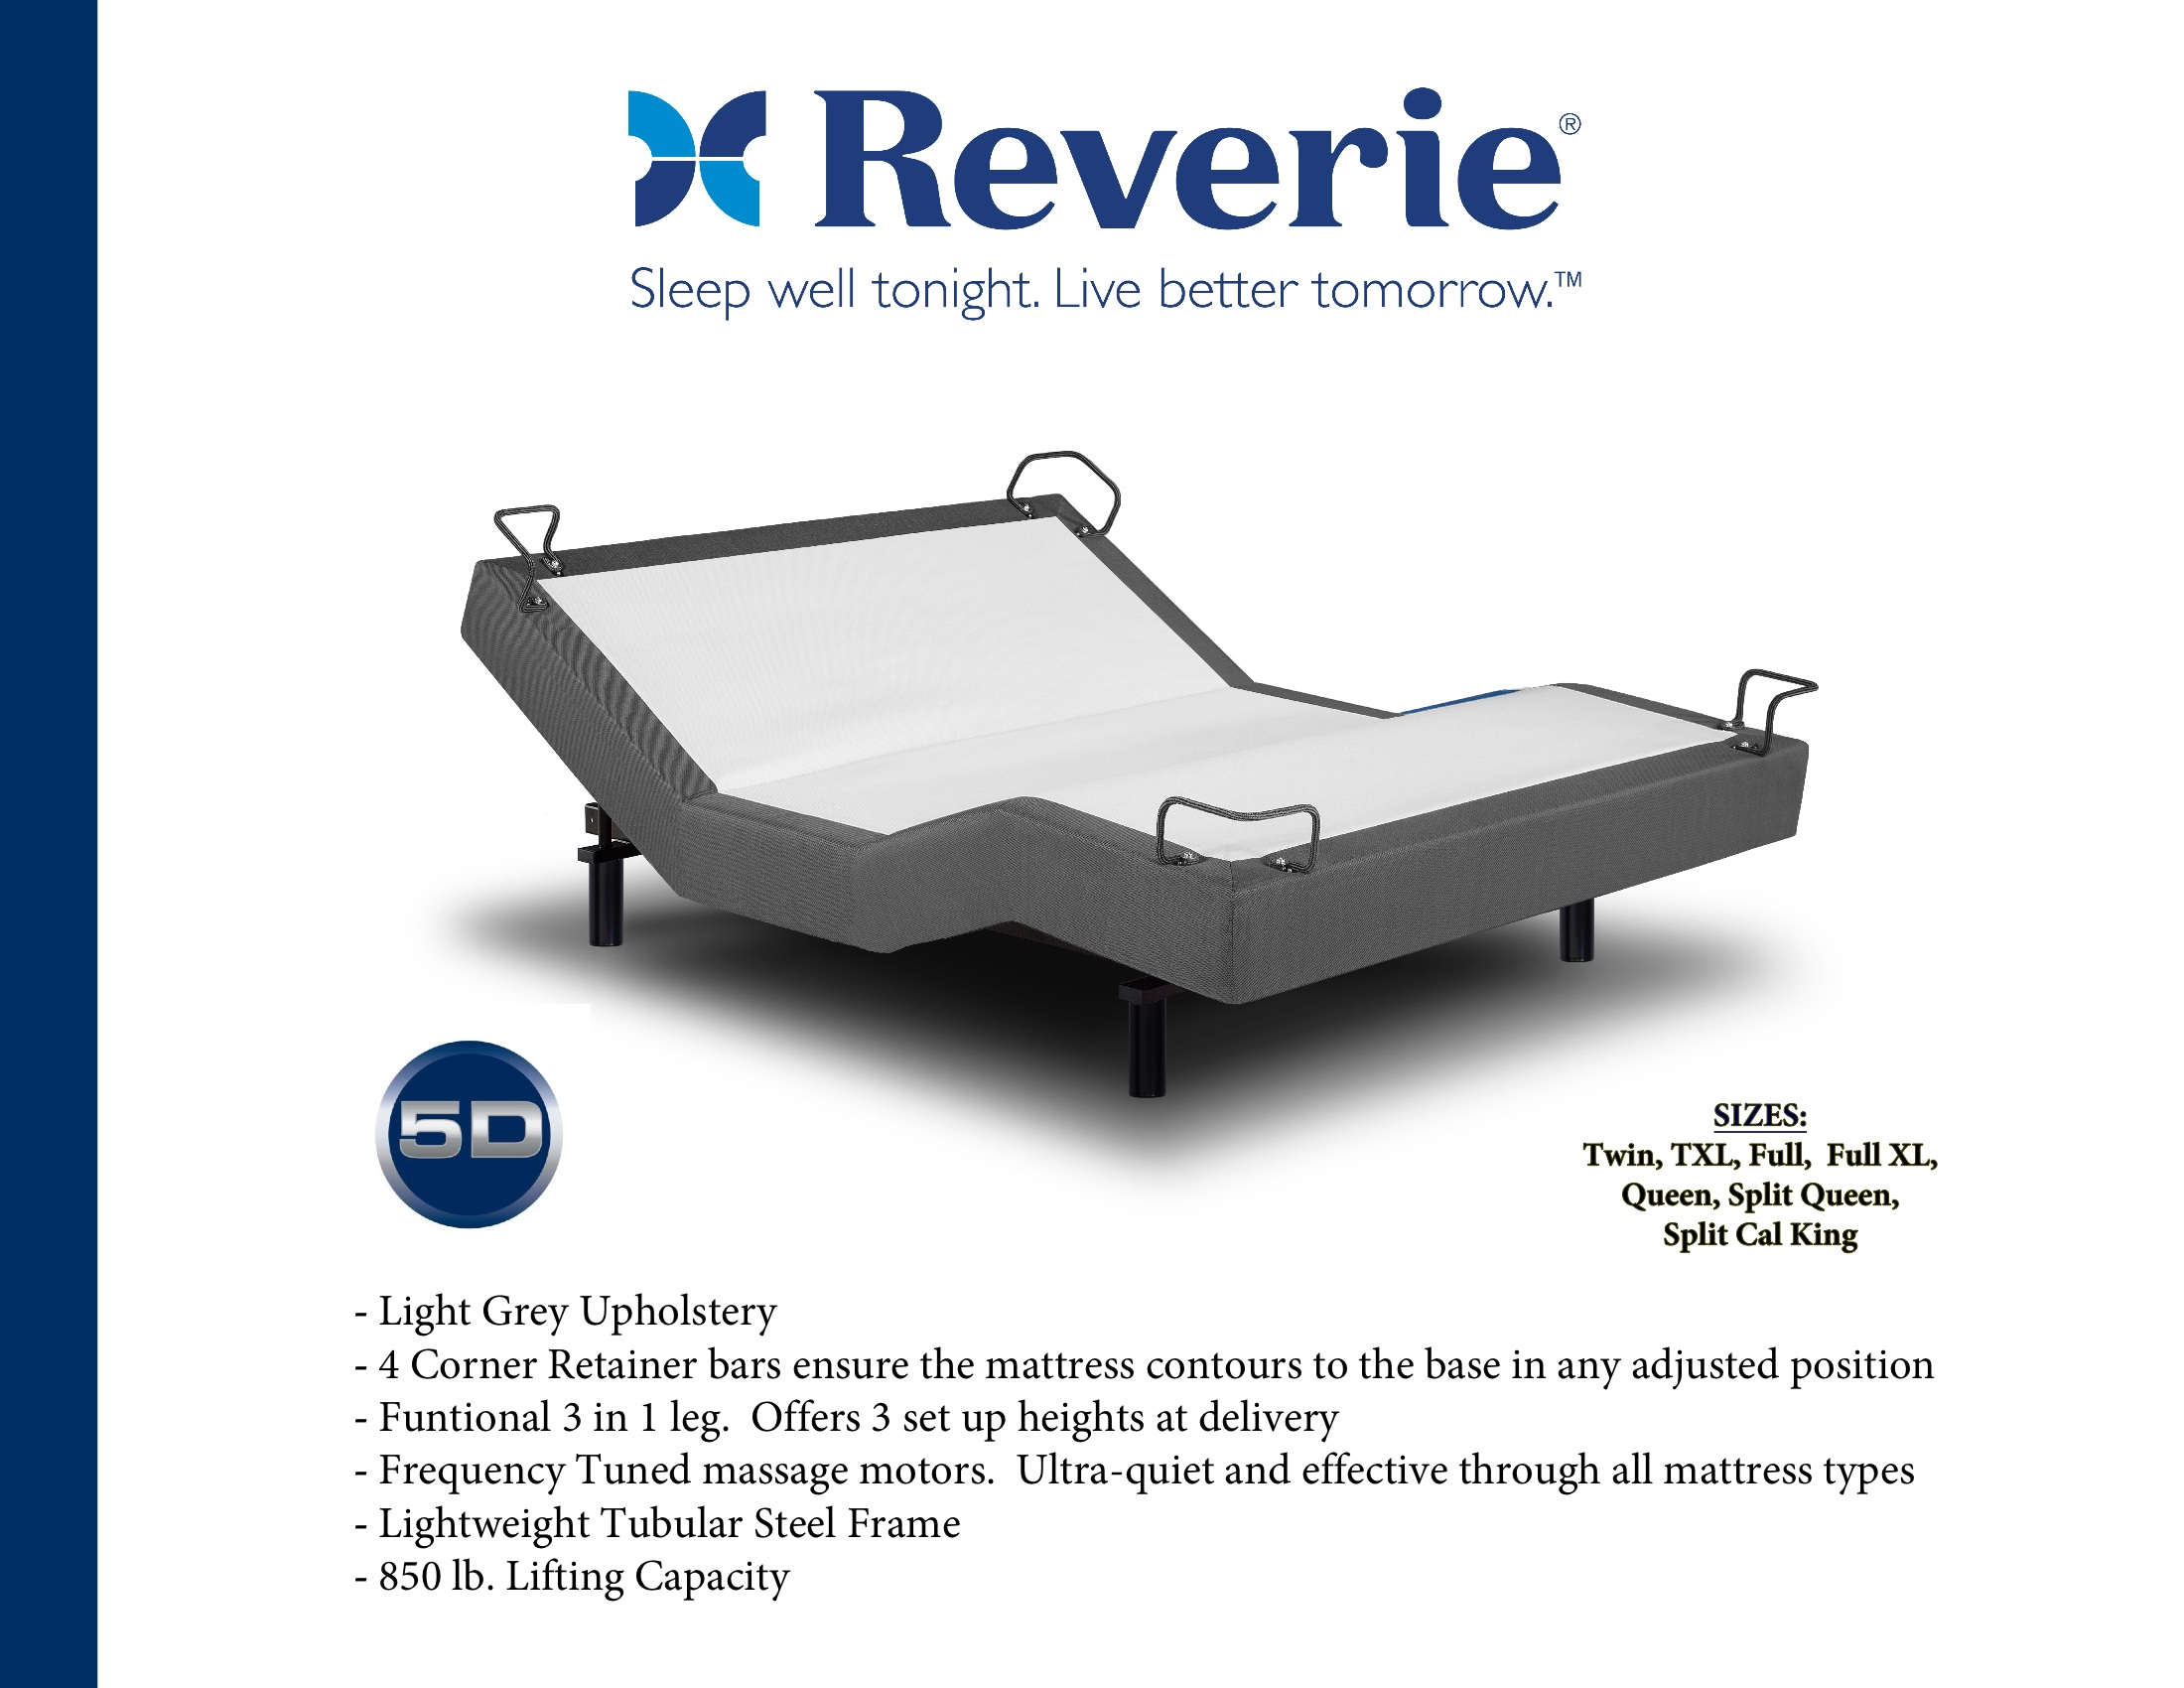 reverie 5d adjustable bed with wireless remote, massage, zero gravity